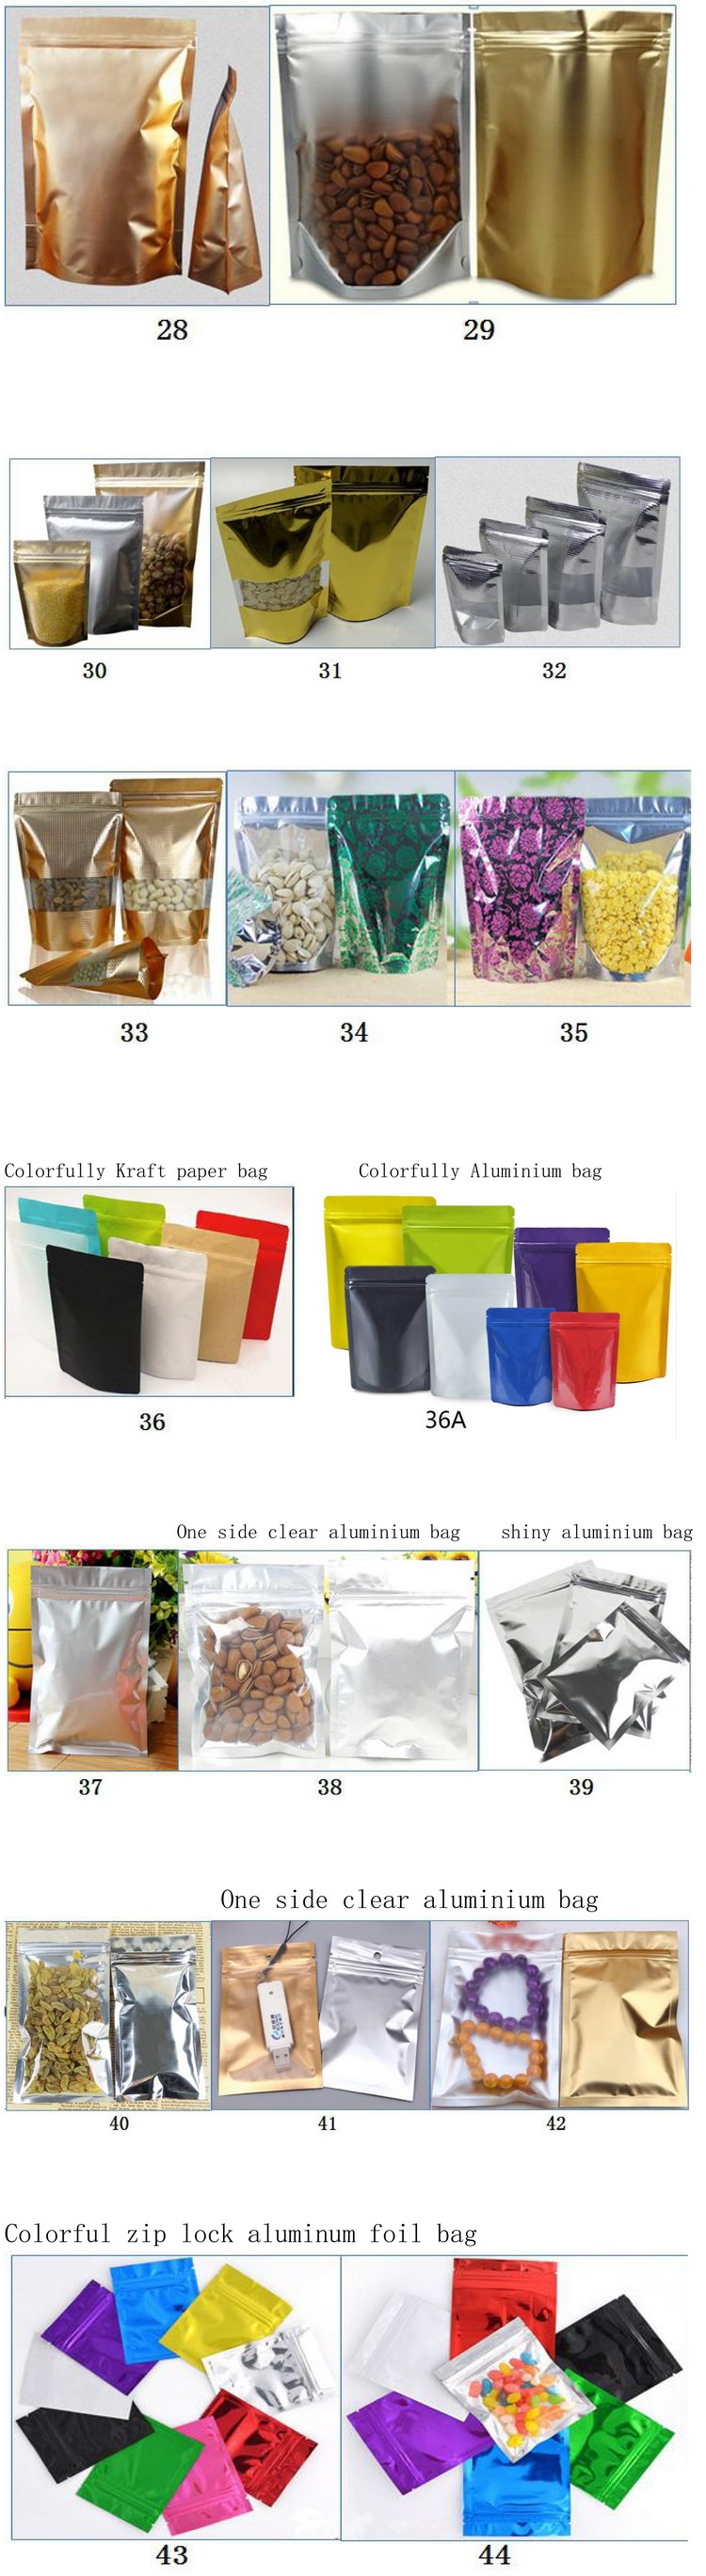 Wholesale Clothing T Shirt Plastic Bag Plastic T-shirt Bag T Shirt Bag